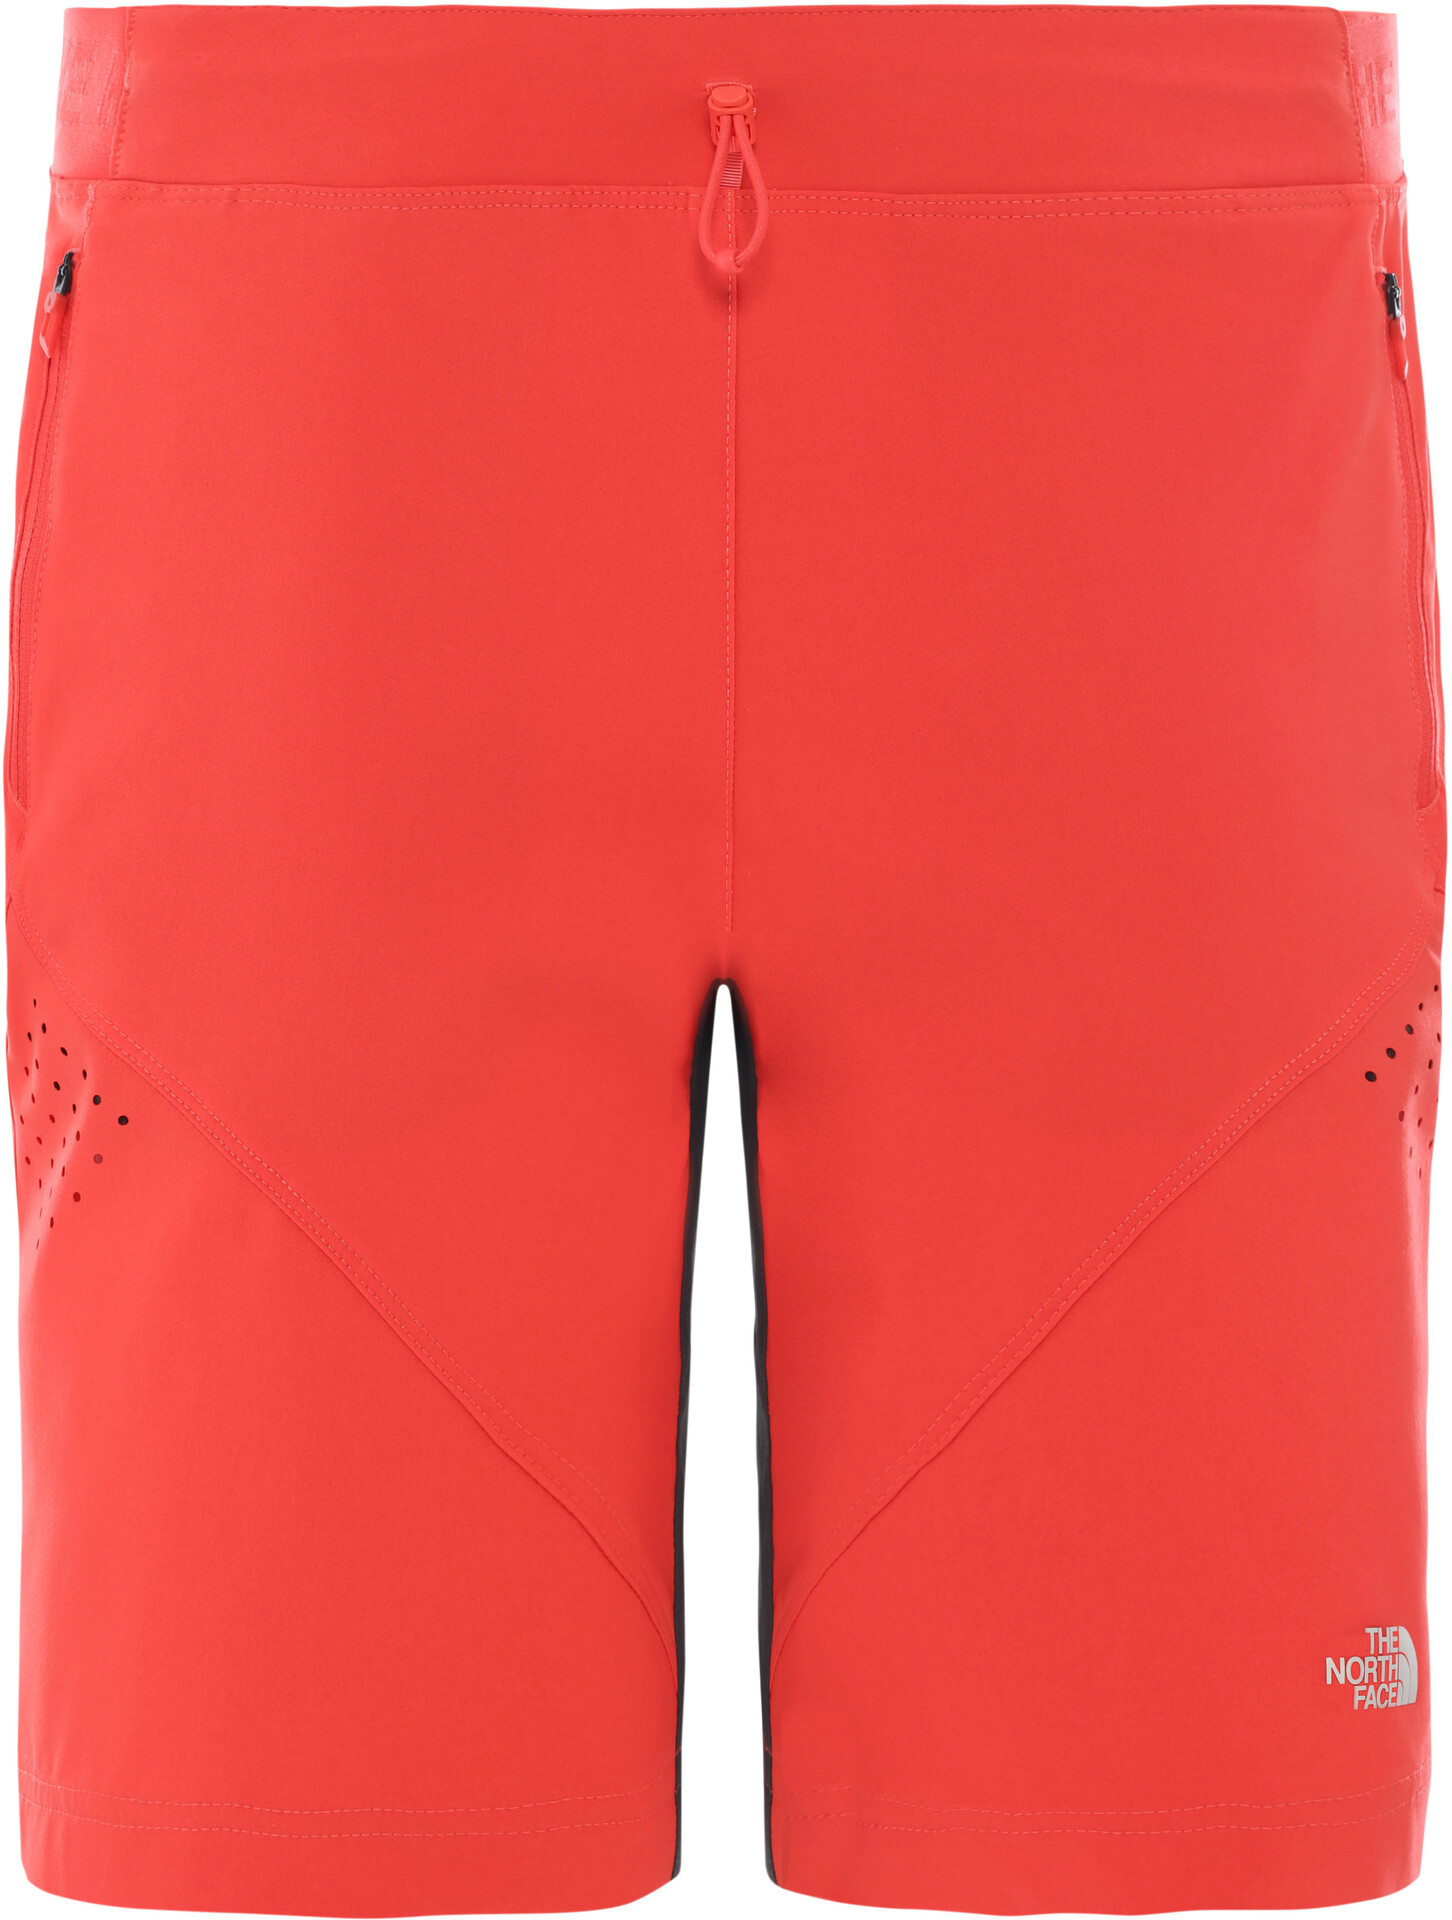 The North Face Impendor Alpine Short Femme, cayenne red